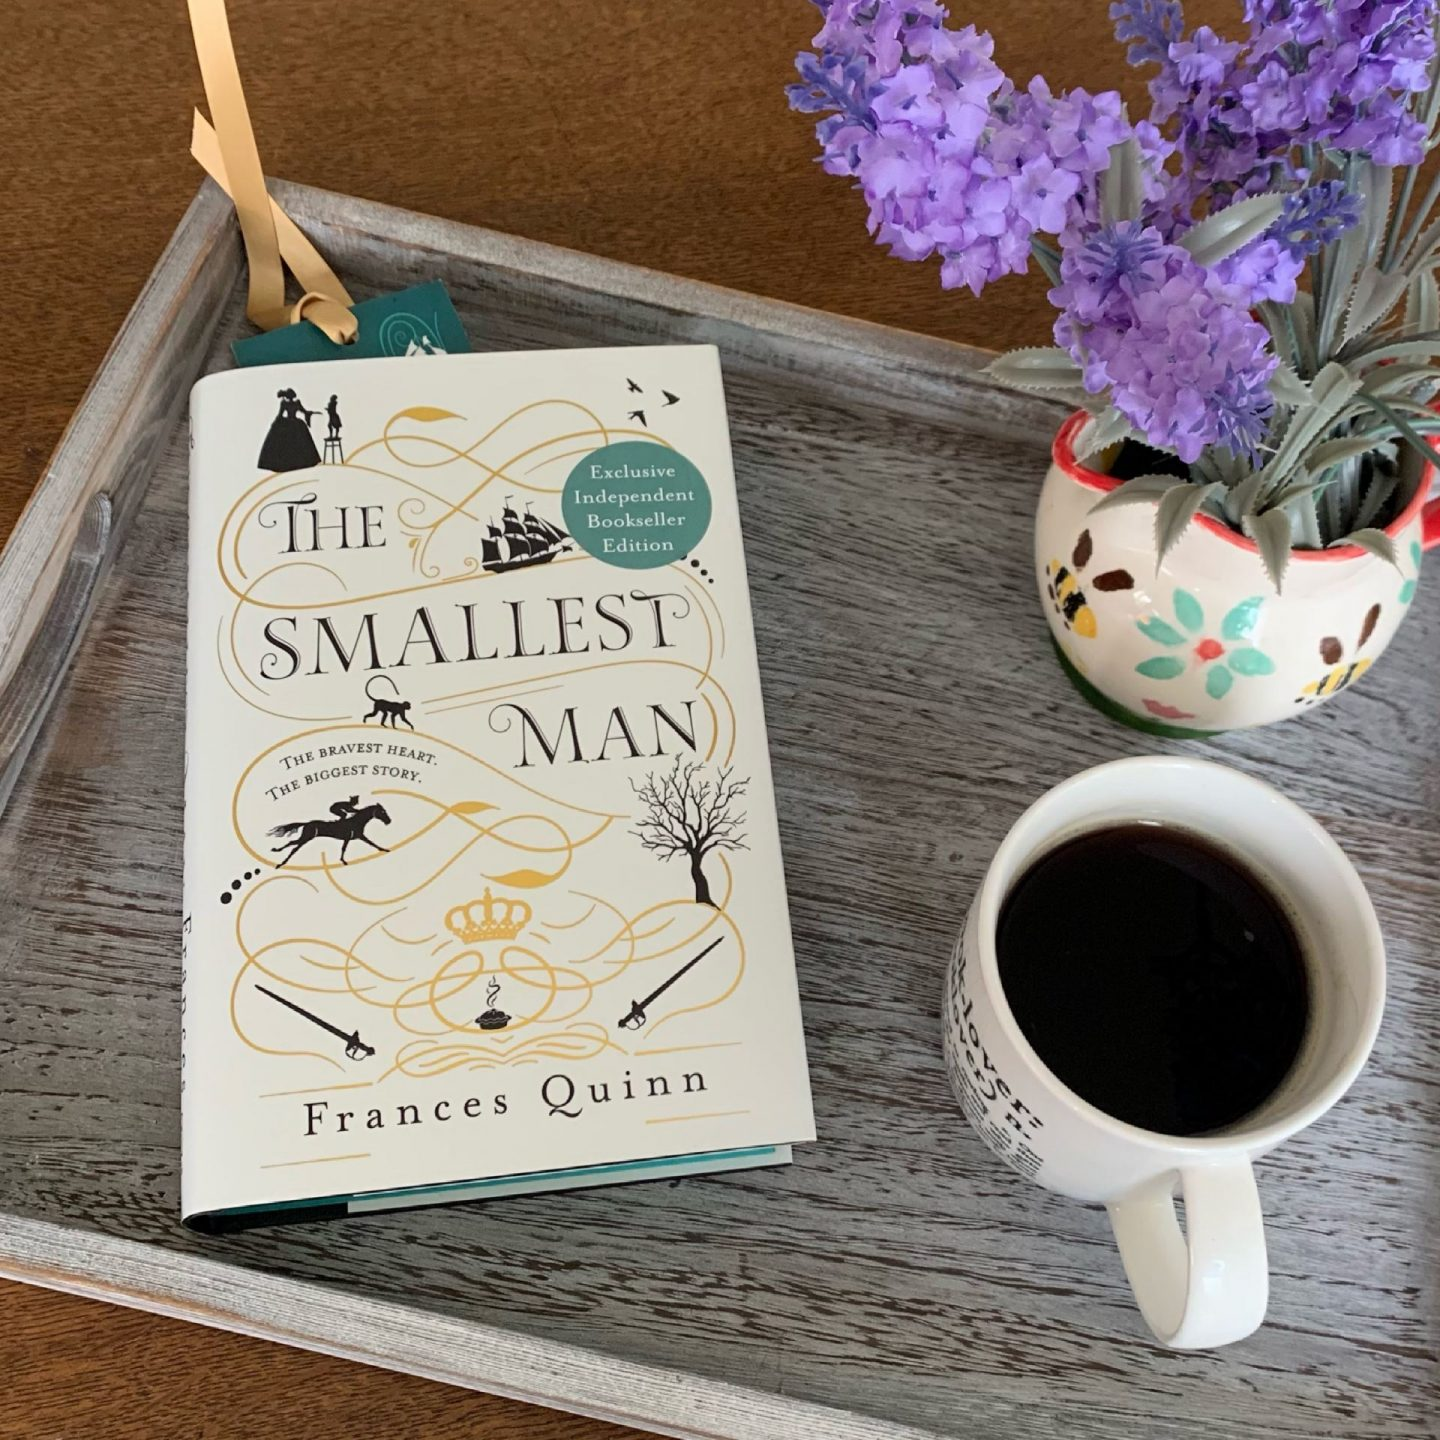 The Smallest Man; a story to fall in love with